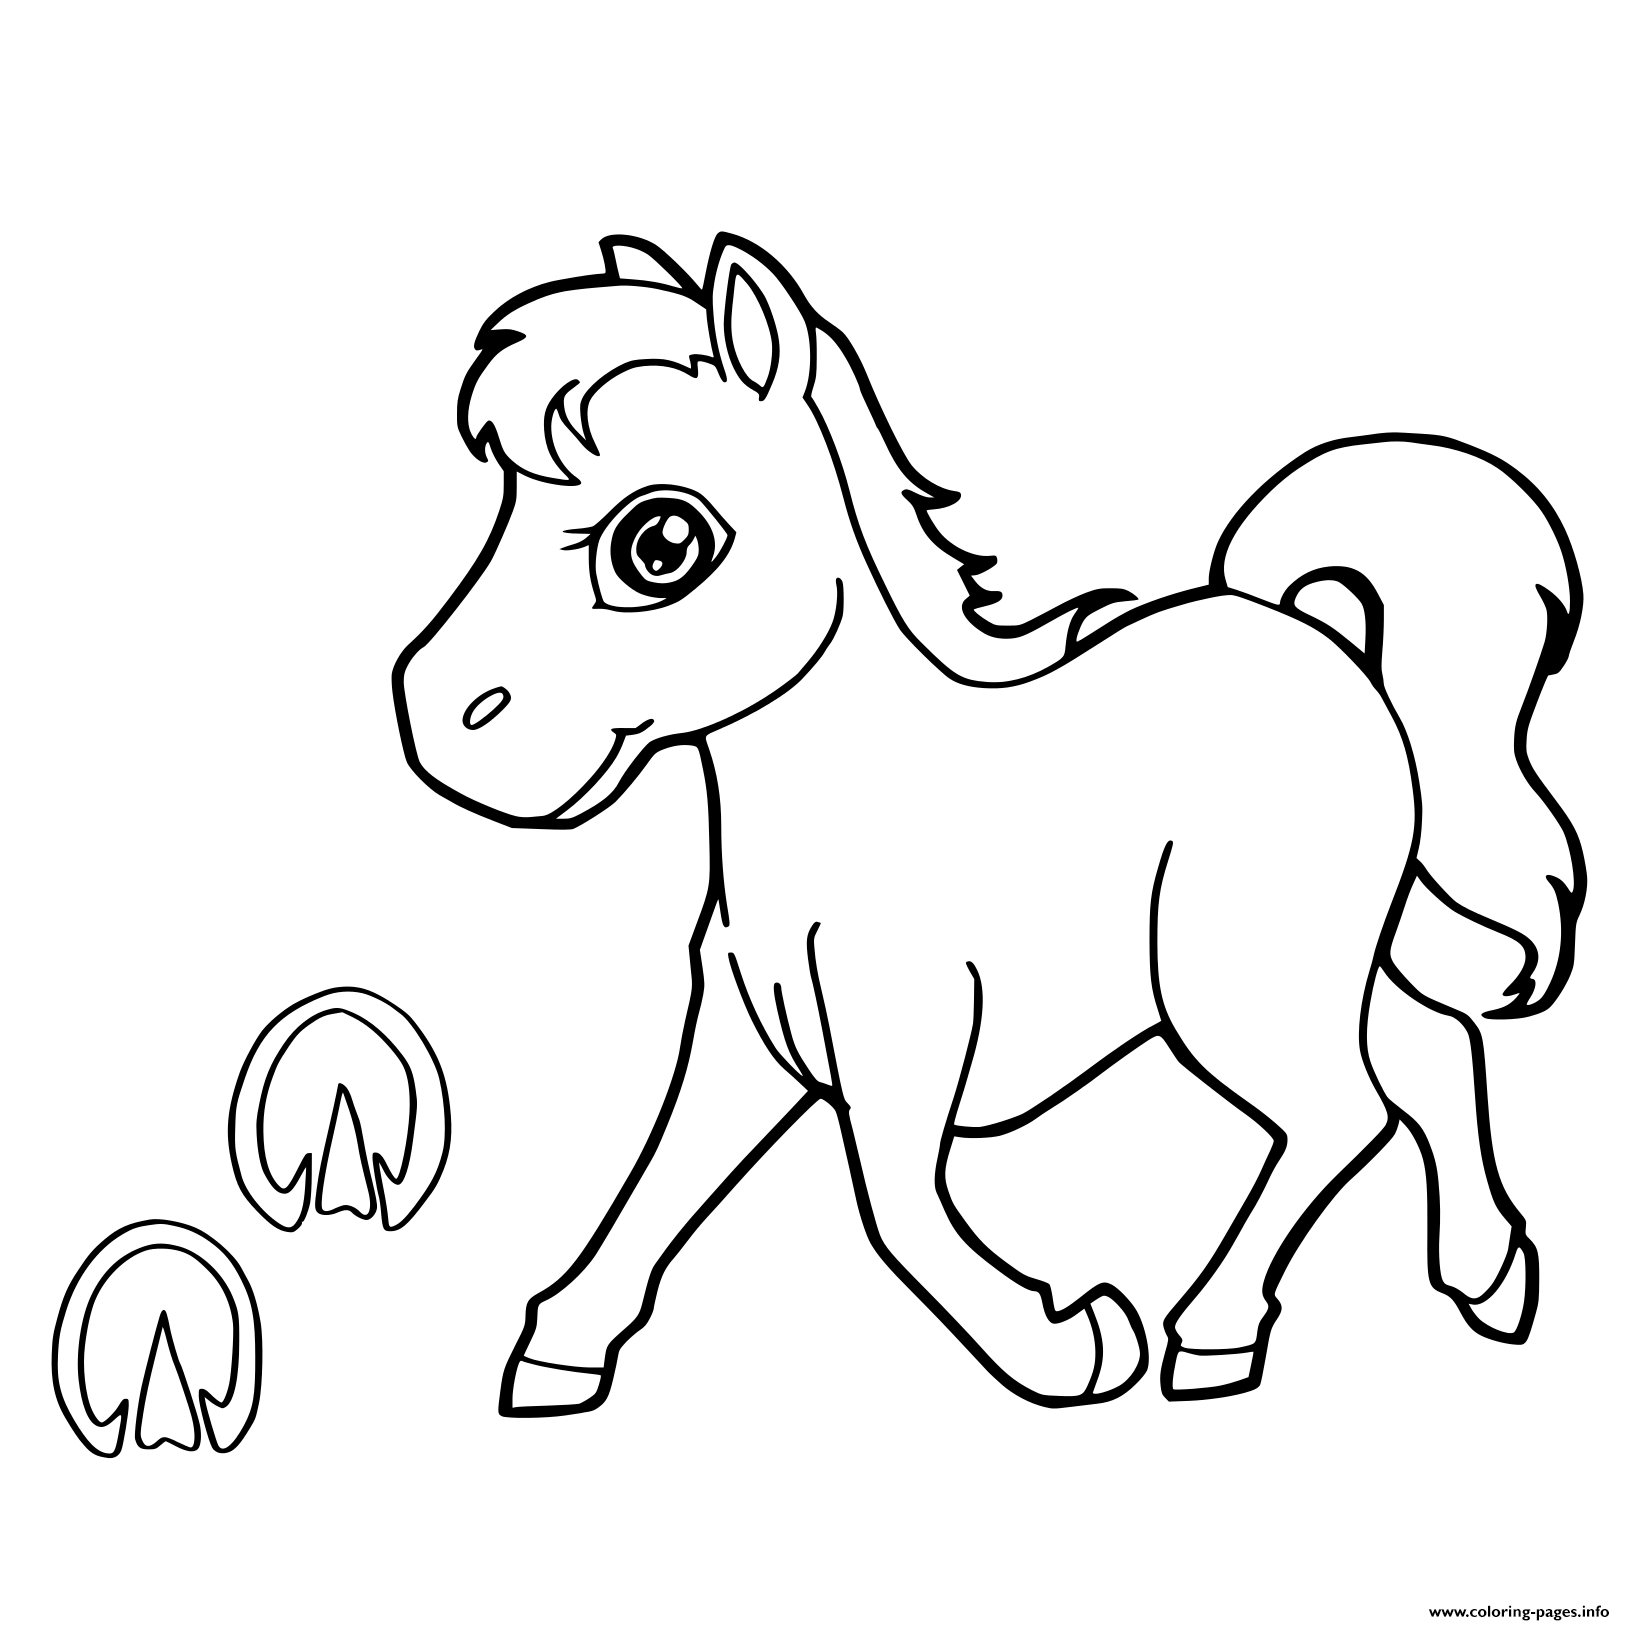 Paw Print With Horse Kid coloring pages